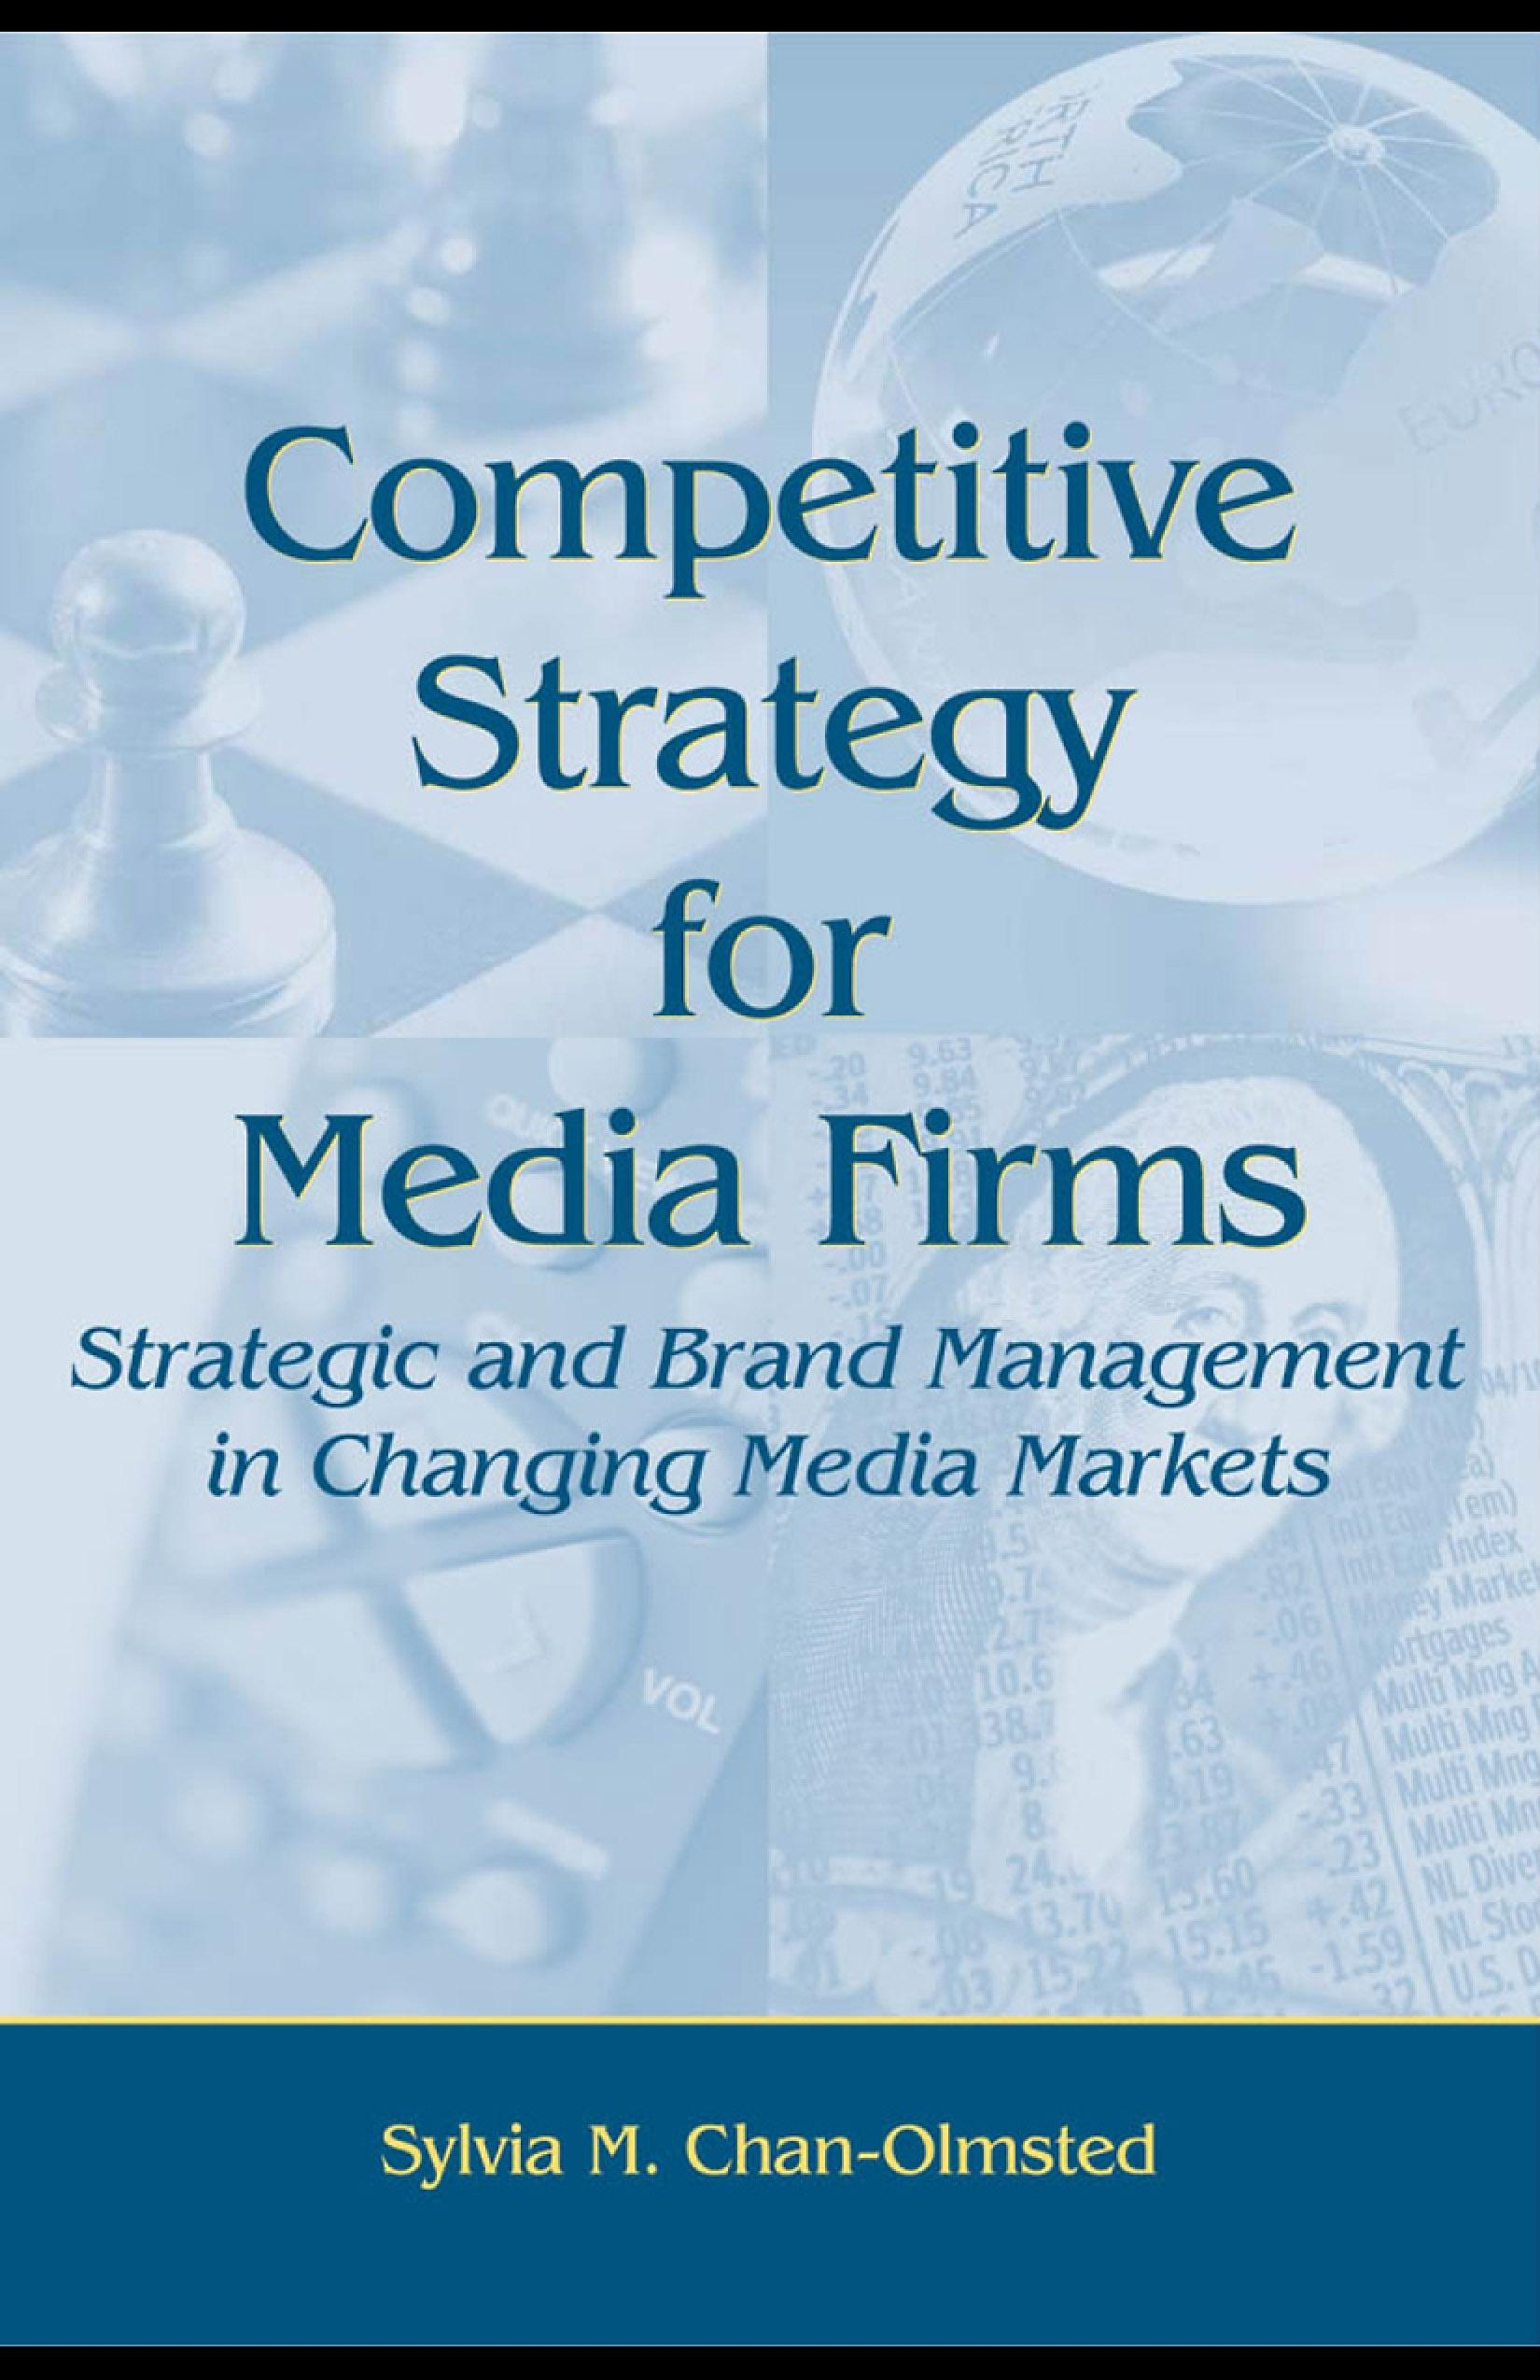 Competitive Strategy for Media Firms: Strategic and Brand Management in Changing Media Markets EB9781410617408